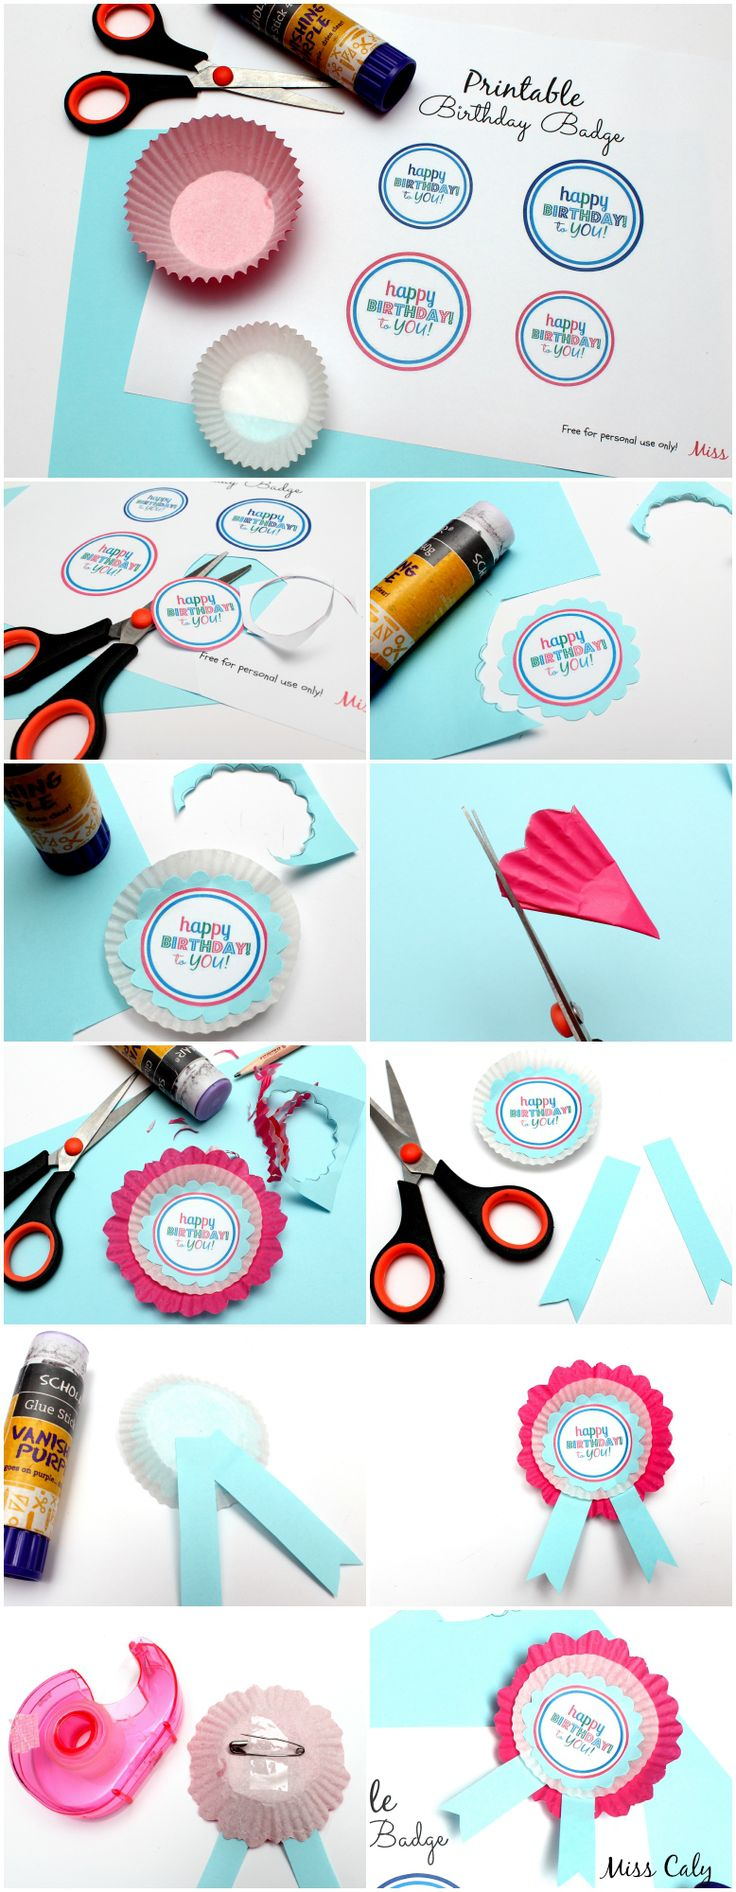 - treat that special someone on the birthday with these printable DIY birthday badges! -